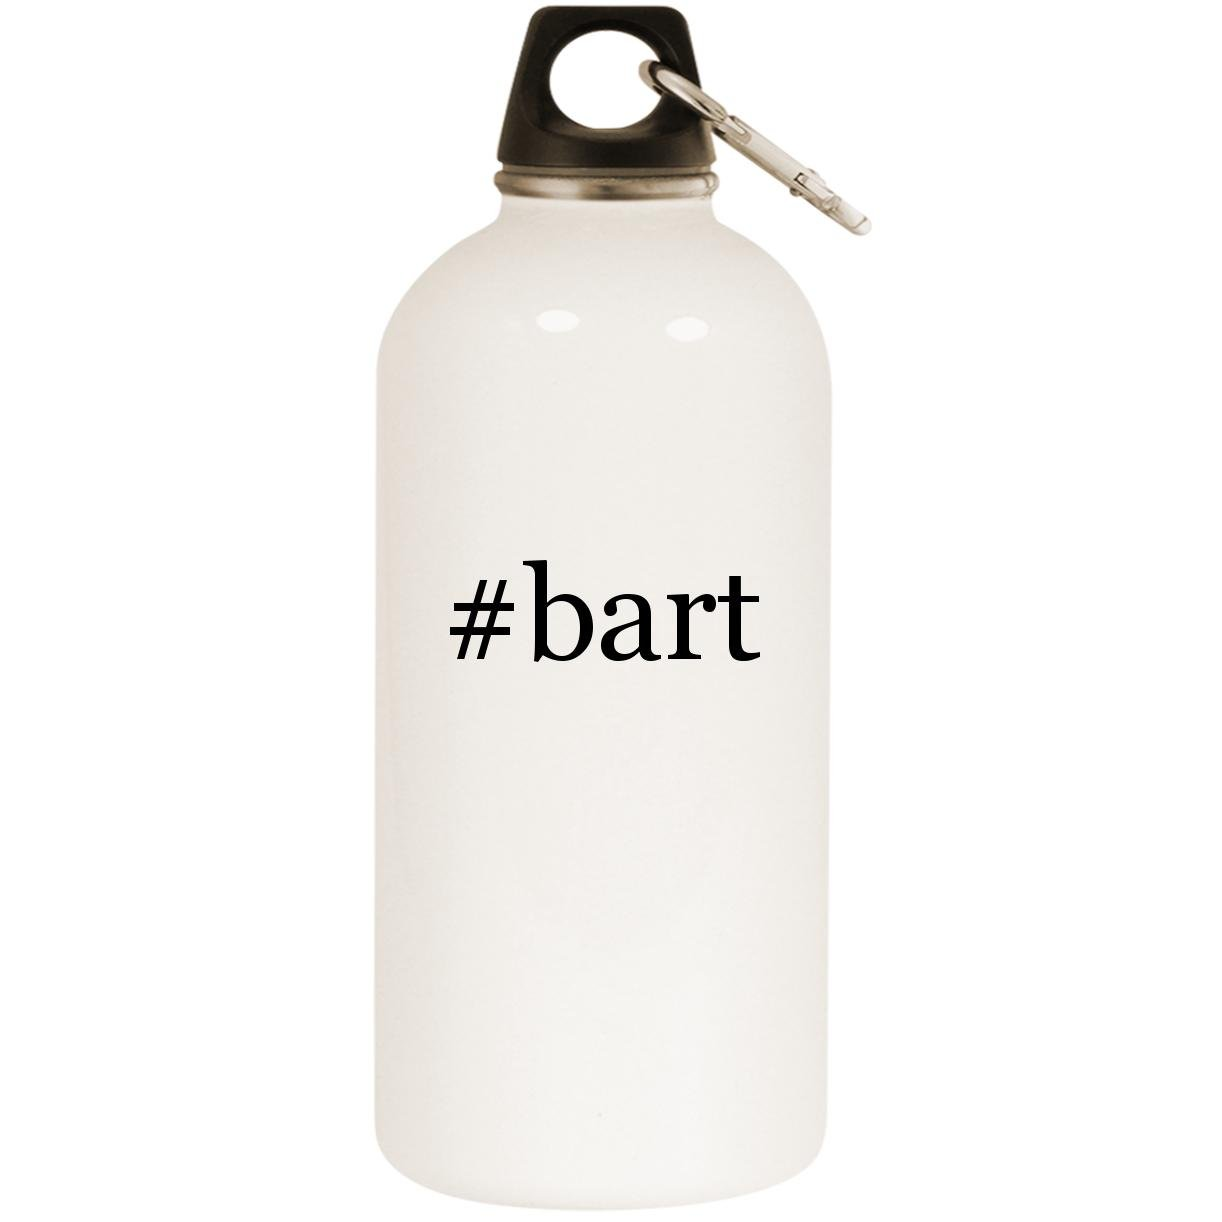 Molandra Products #bart - White Hashtag 20oz Stainless Steel Water Bottle with Carabiner by Molandra Products